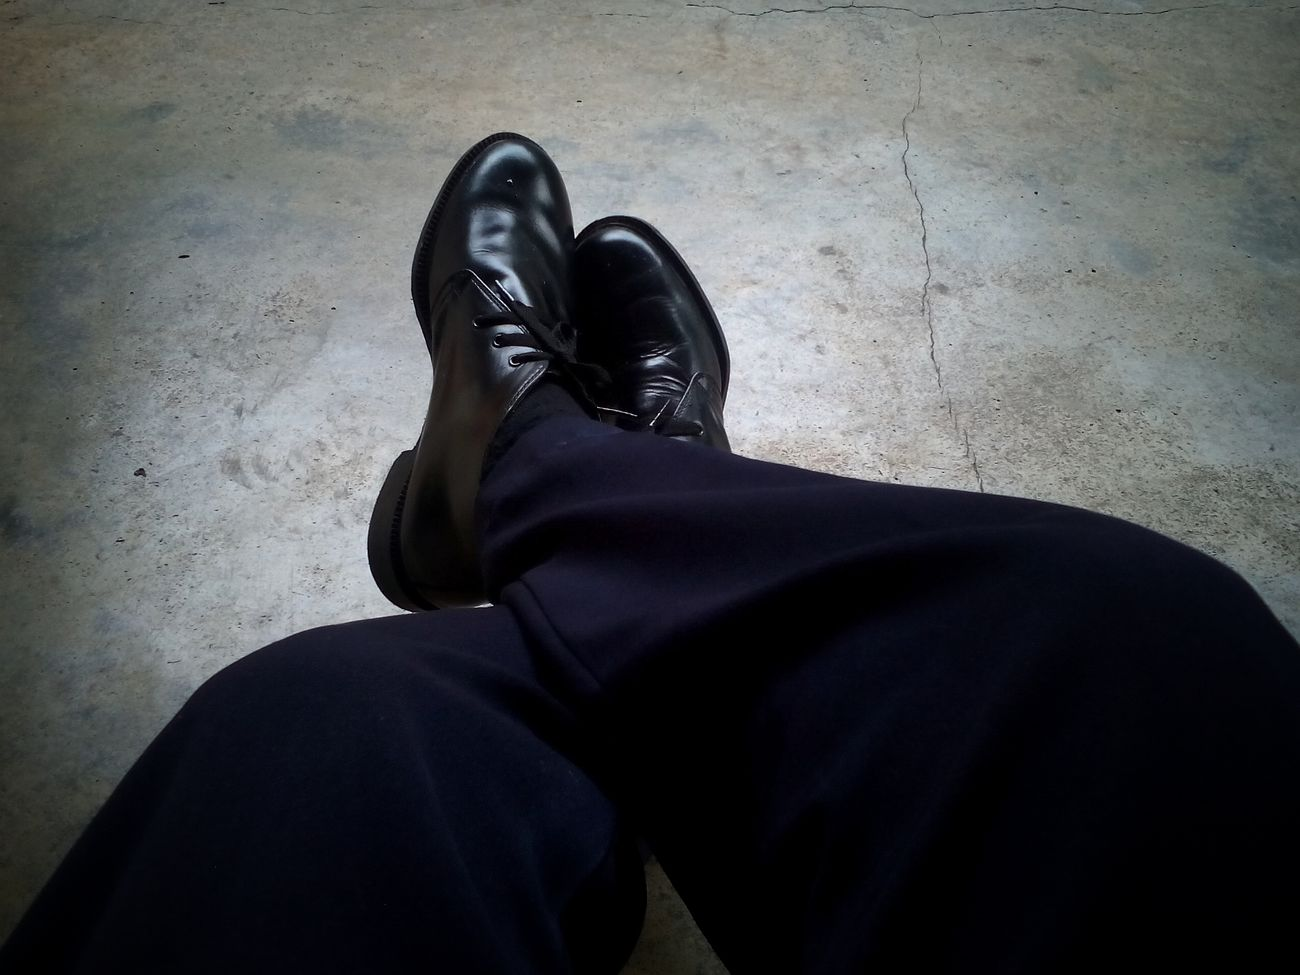 Human Body Part One Person Black Color People Human Leg Unrecognizable Person Adult Adults Only Low Section Standing Real People One Man Only Men Indoors  Only Men Day Close-up Shoe